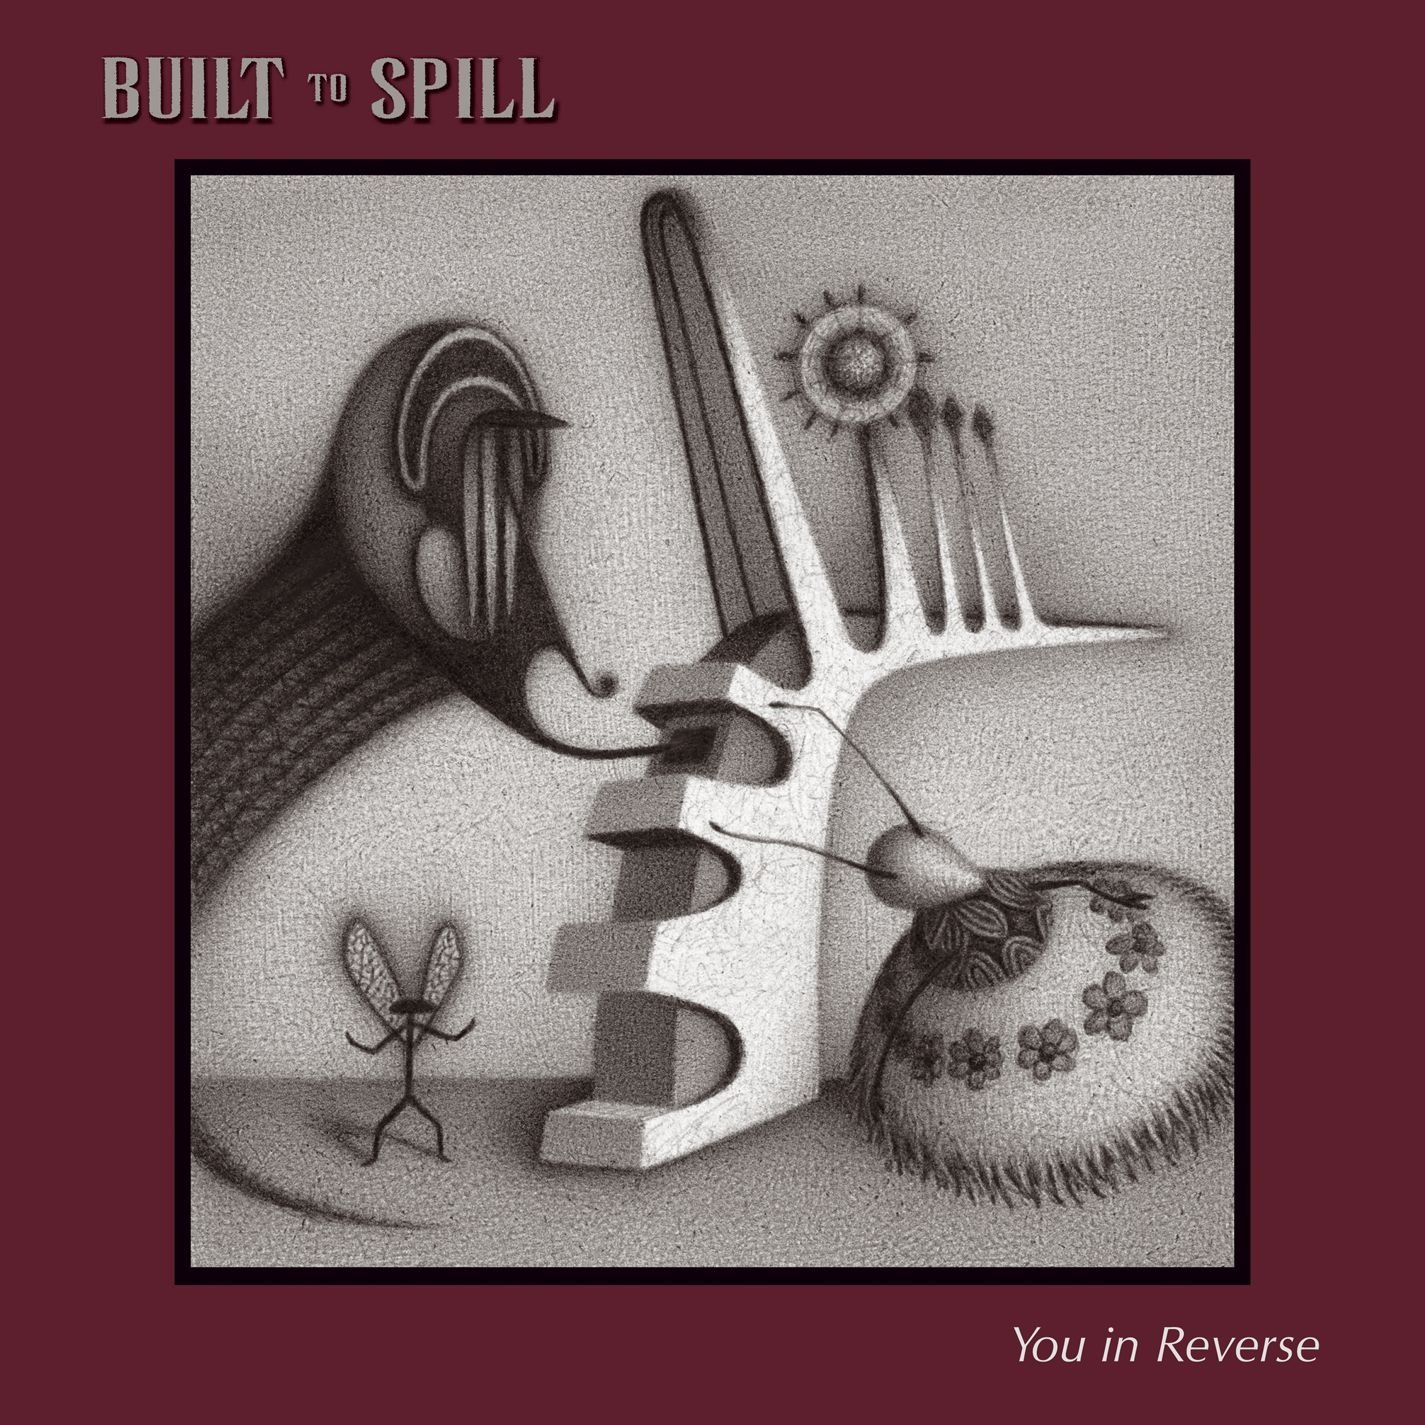 Built To Spill, You In Reverse